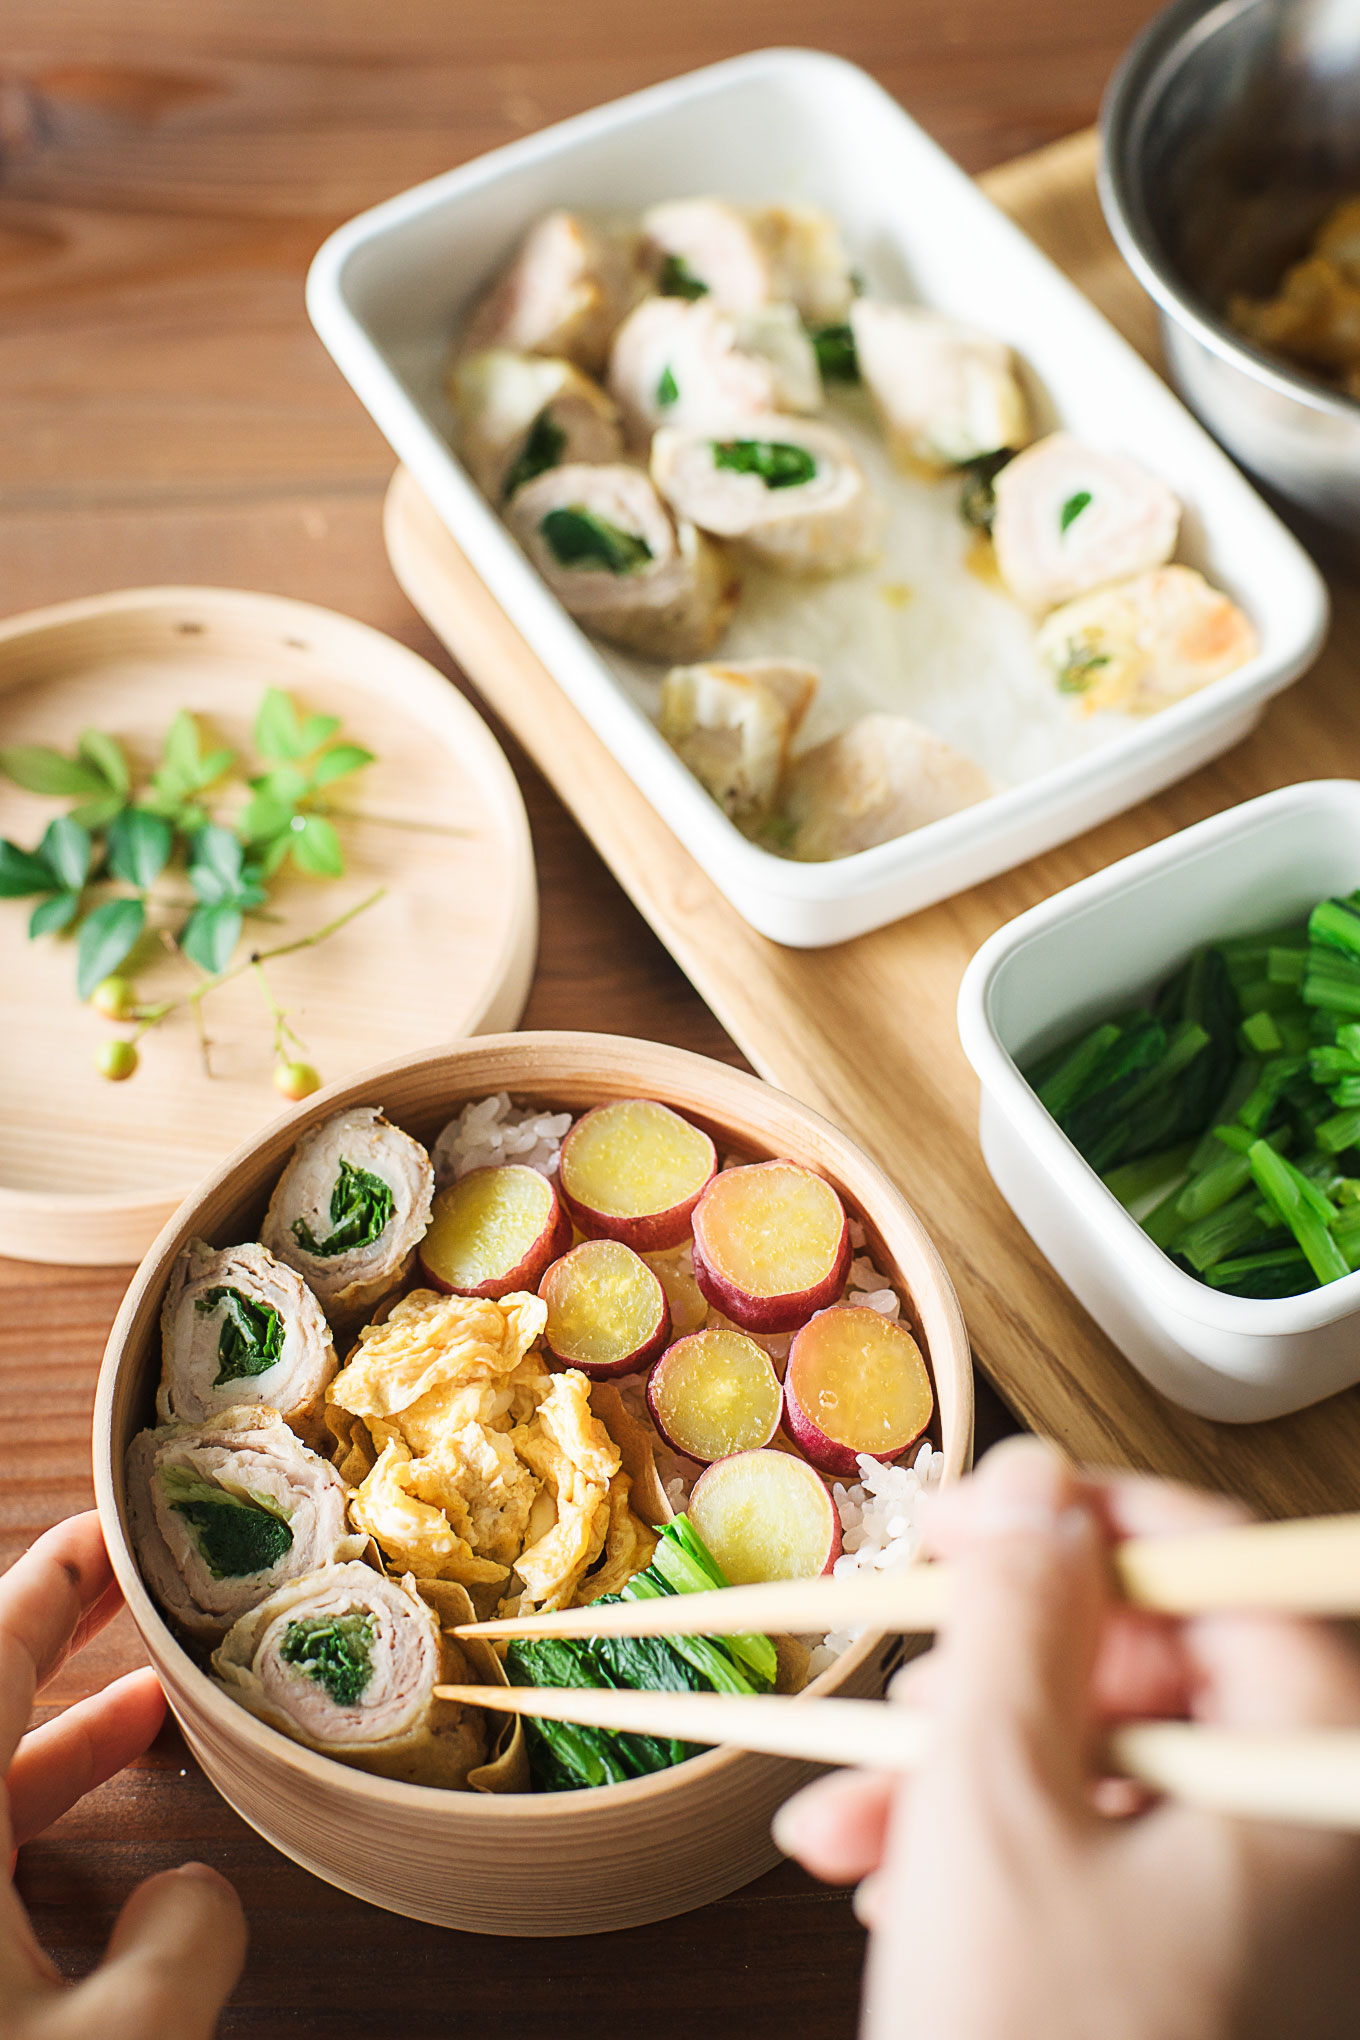 pork-and-vegetable-rolls-magewappa-bento-10